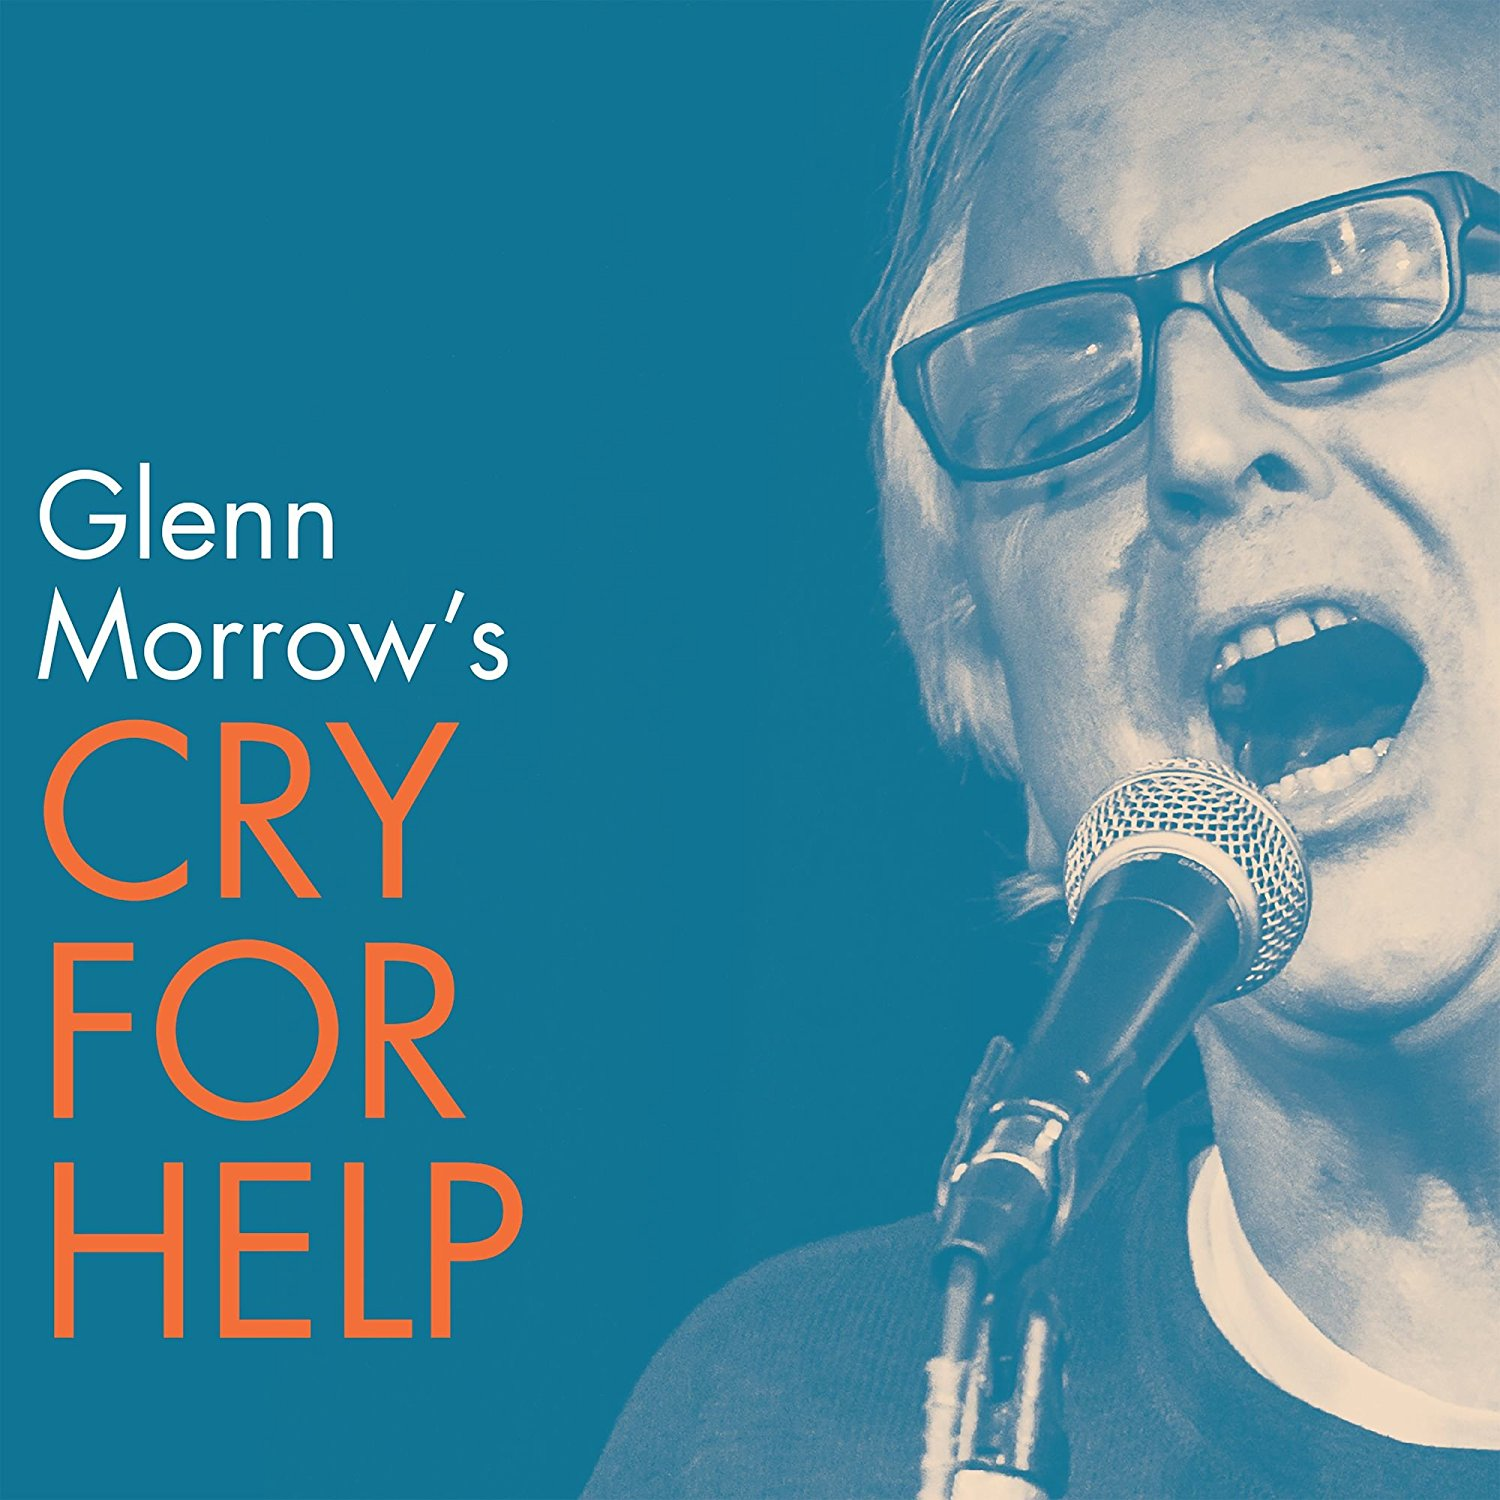 Glenn Morrow's Cry For Help - Glenn Morrow's Cry For Help